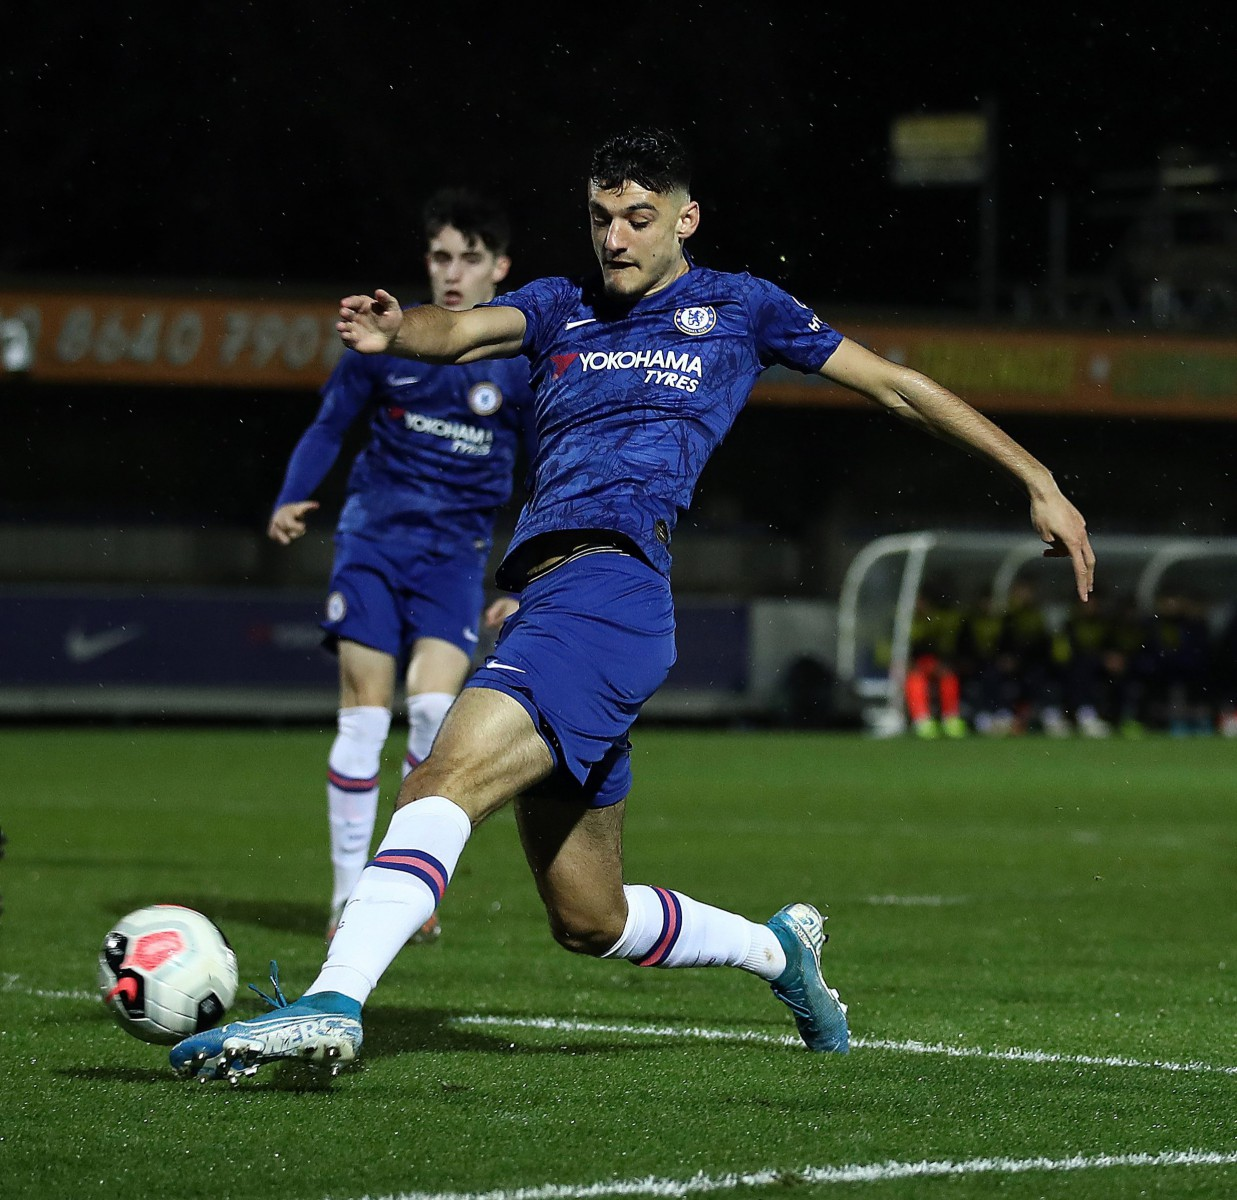 Chelseas latest academy prodigy Armando Broja, 18, scores hat-trick for  youth team vs Huddersfield - Sporting Excitement